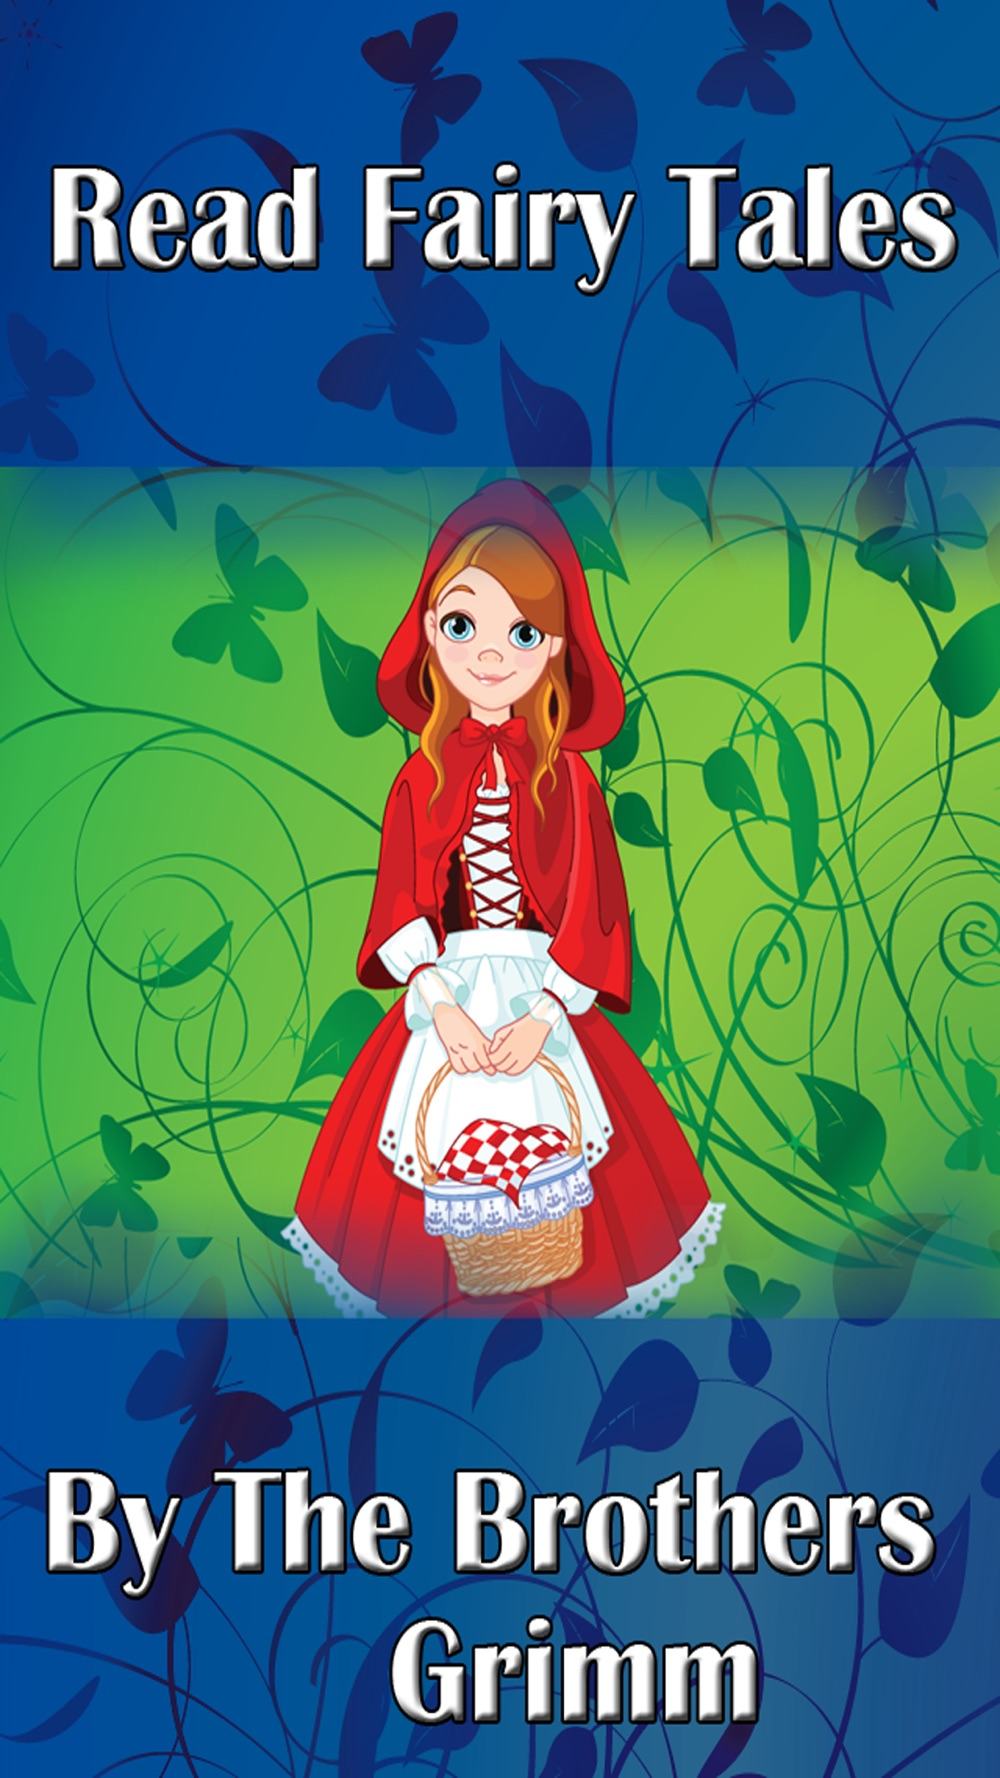 Fill in the Blank Stories – Fairy Tales by The Brothers Grimm